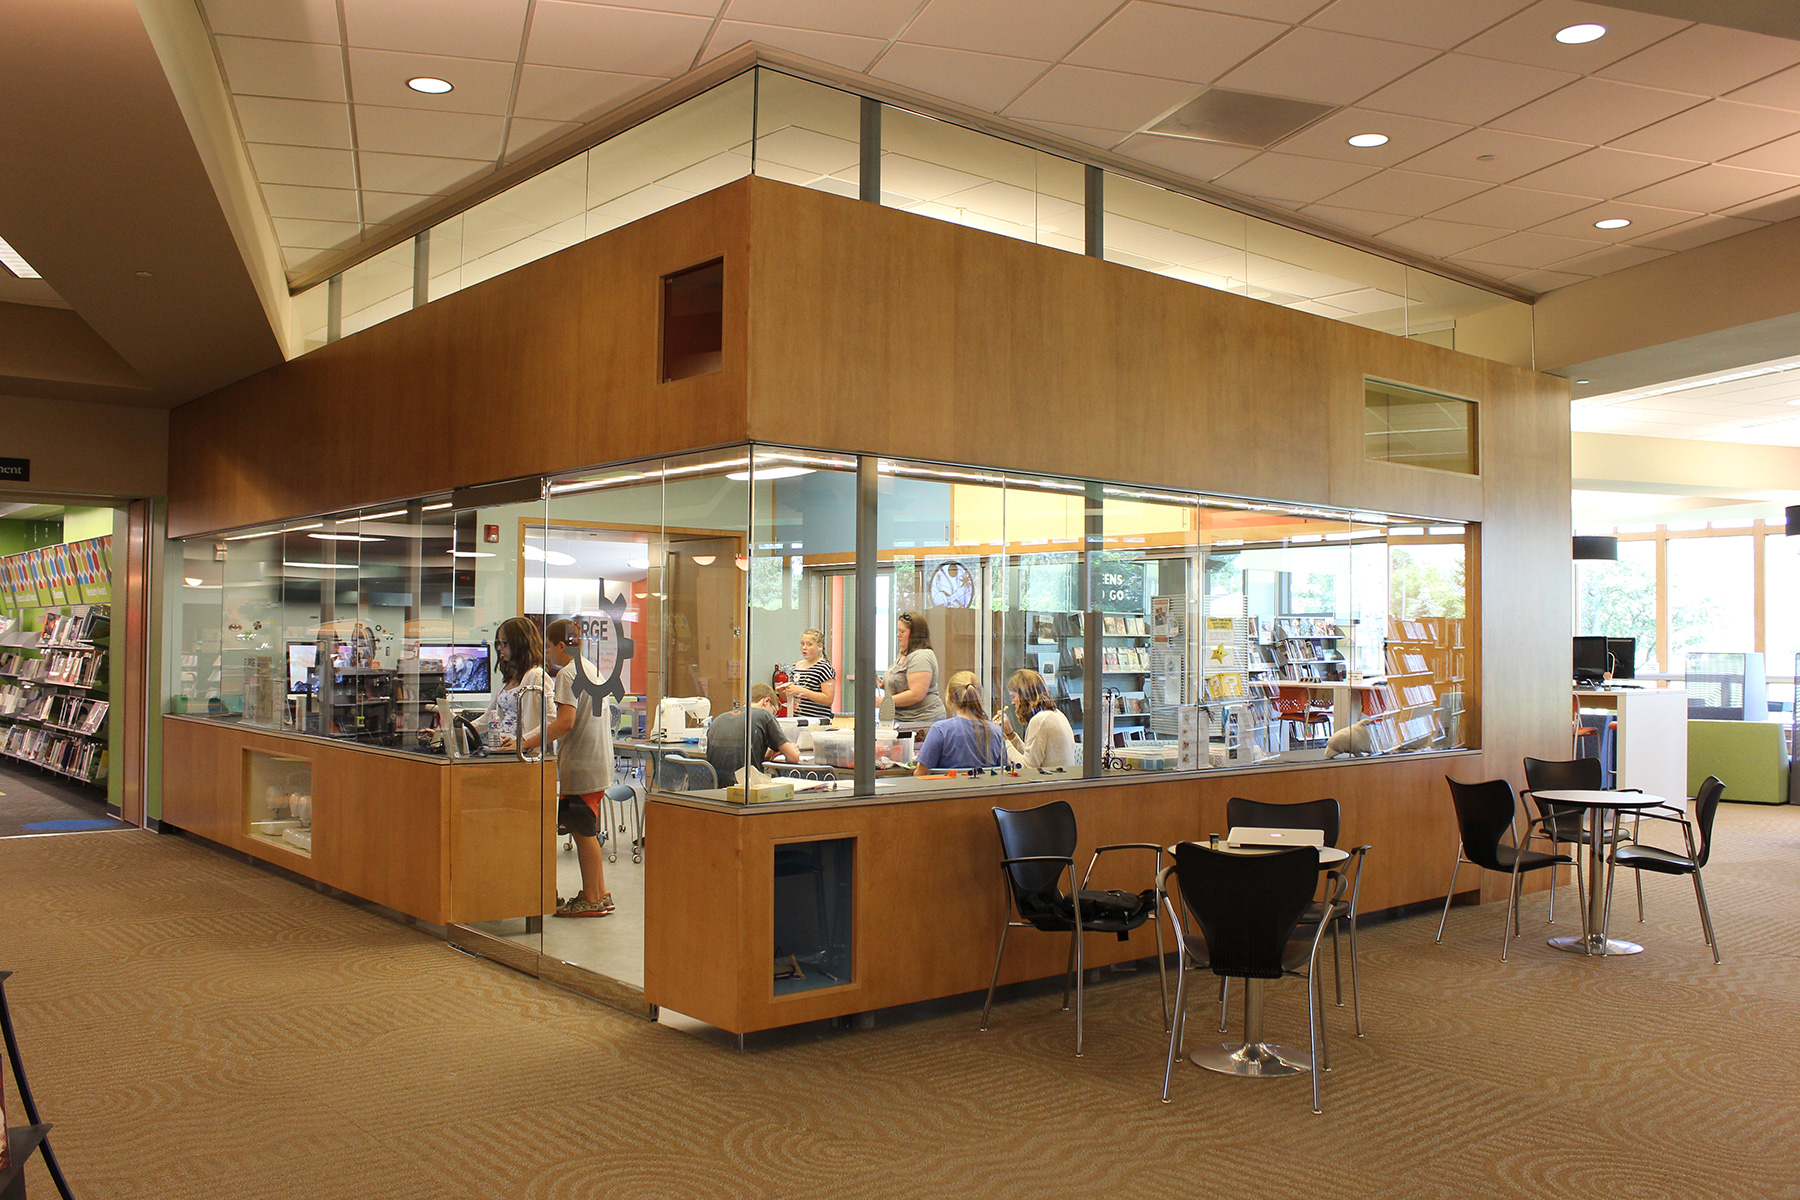 10 Questions To Plan A Library Makerspace